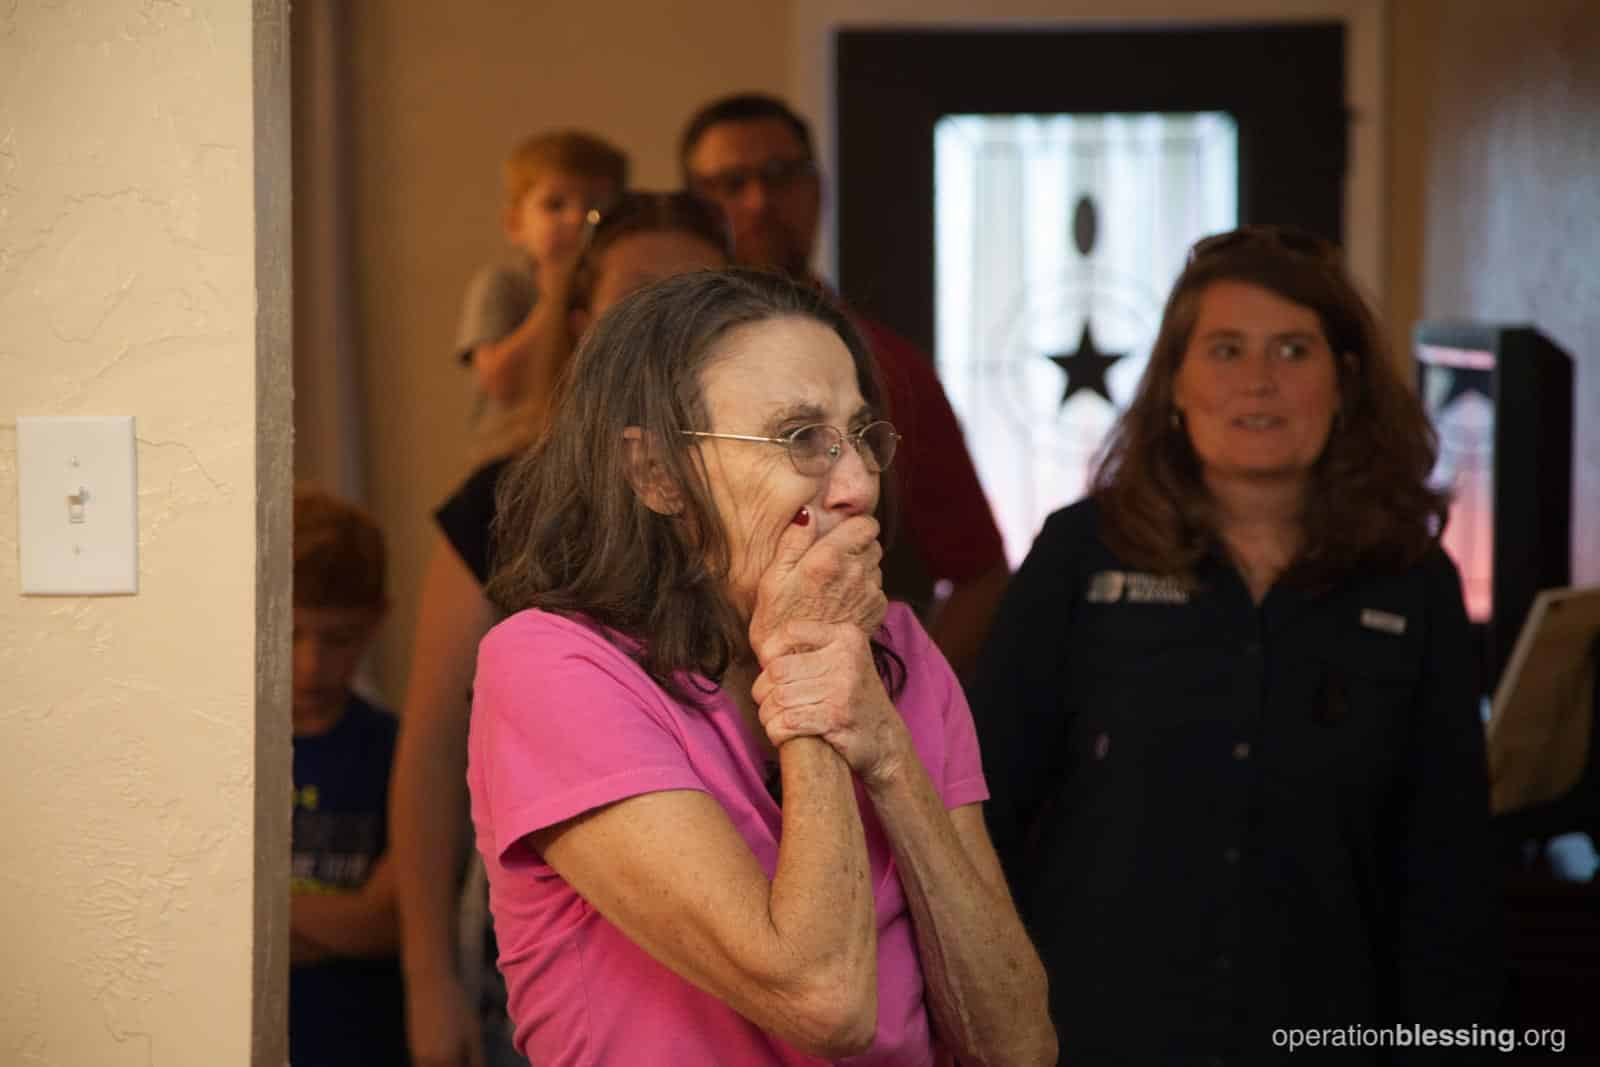 Priscilla is overcome by emotion as she sees her new home. Operation Blessing helped in rebuilding her life.